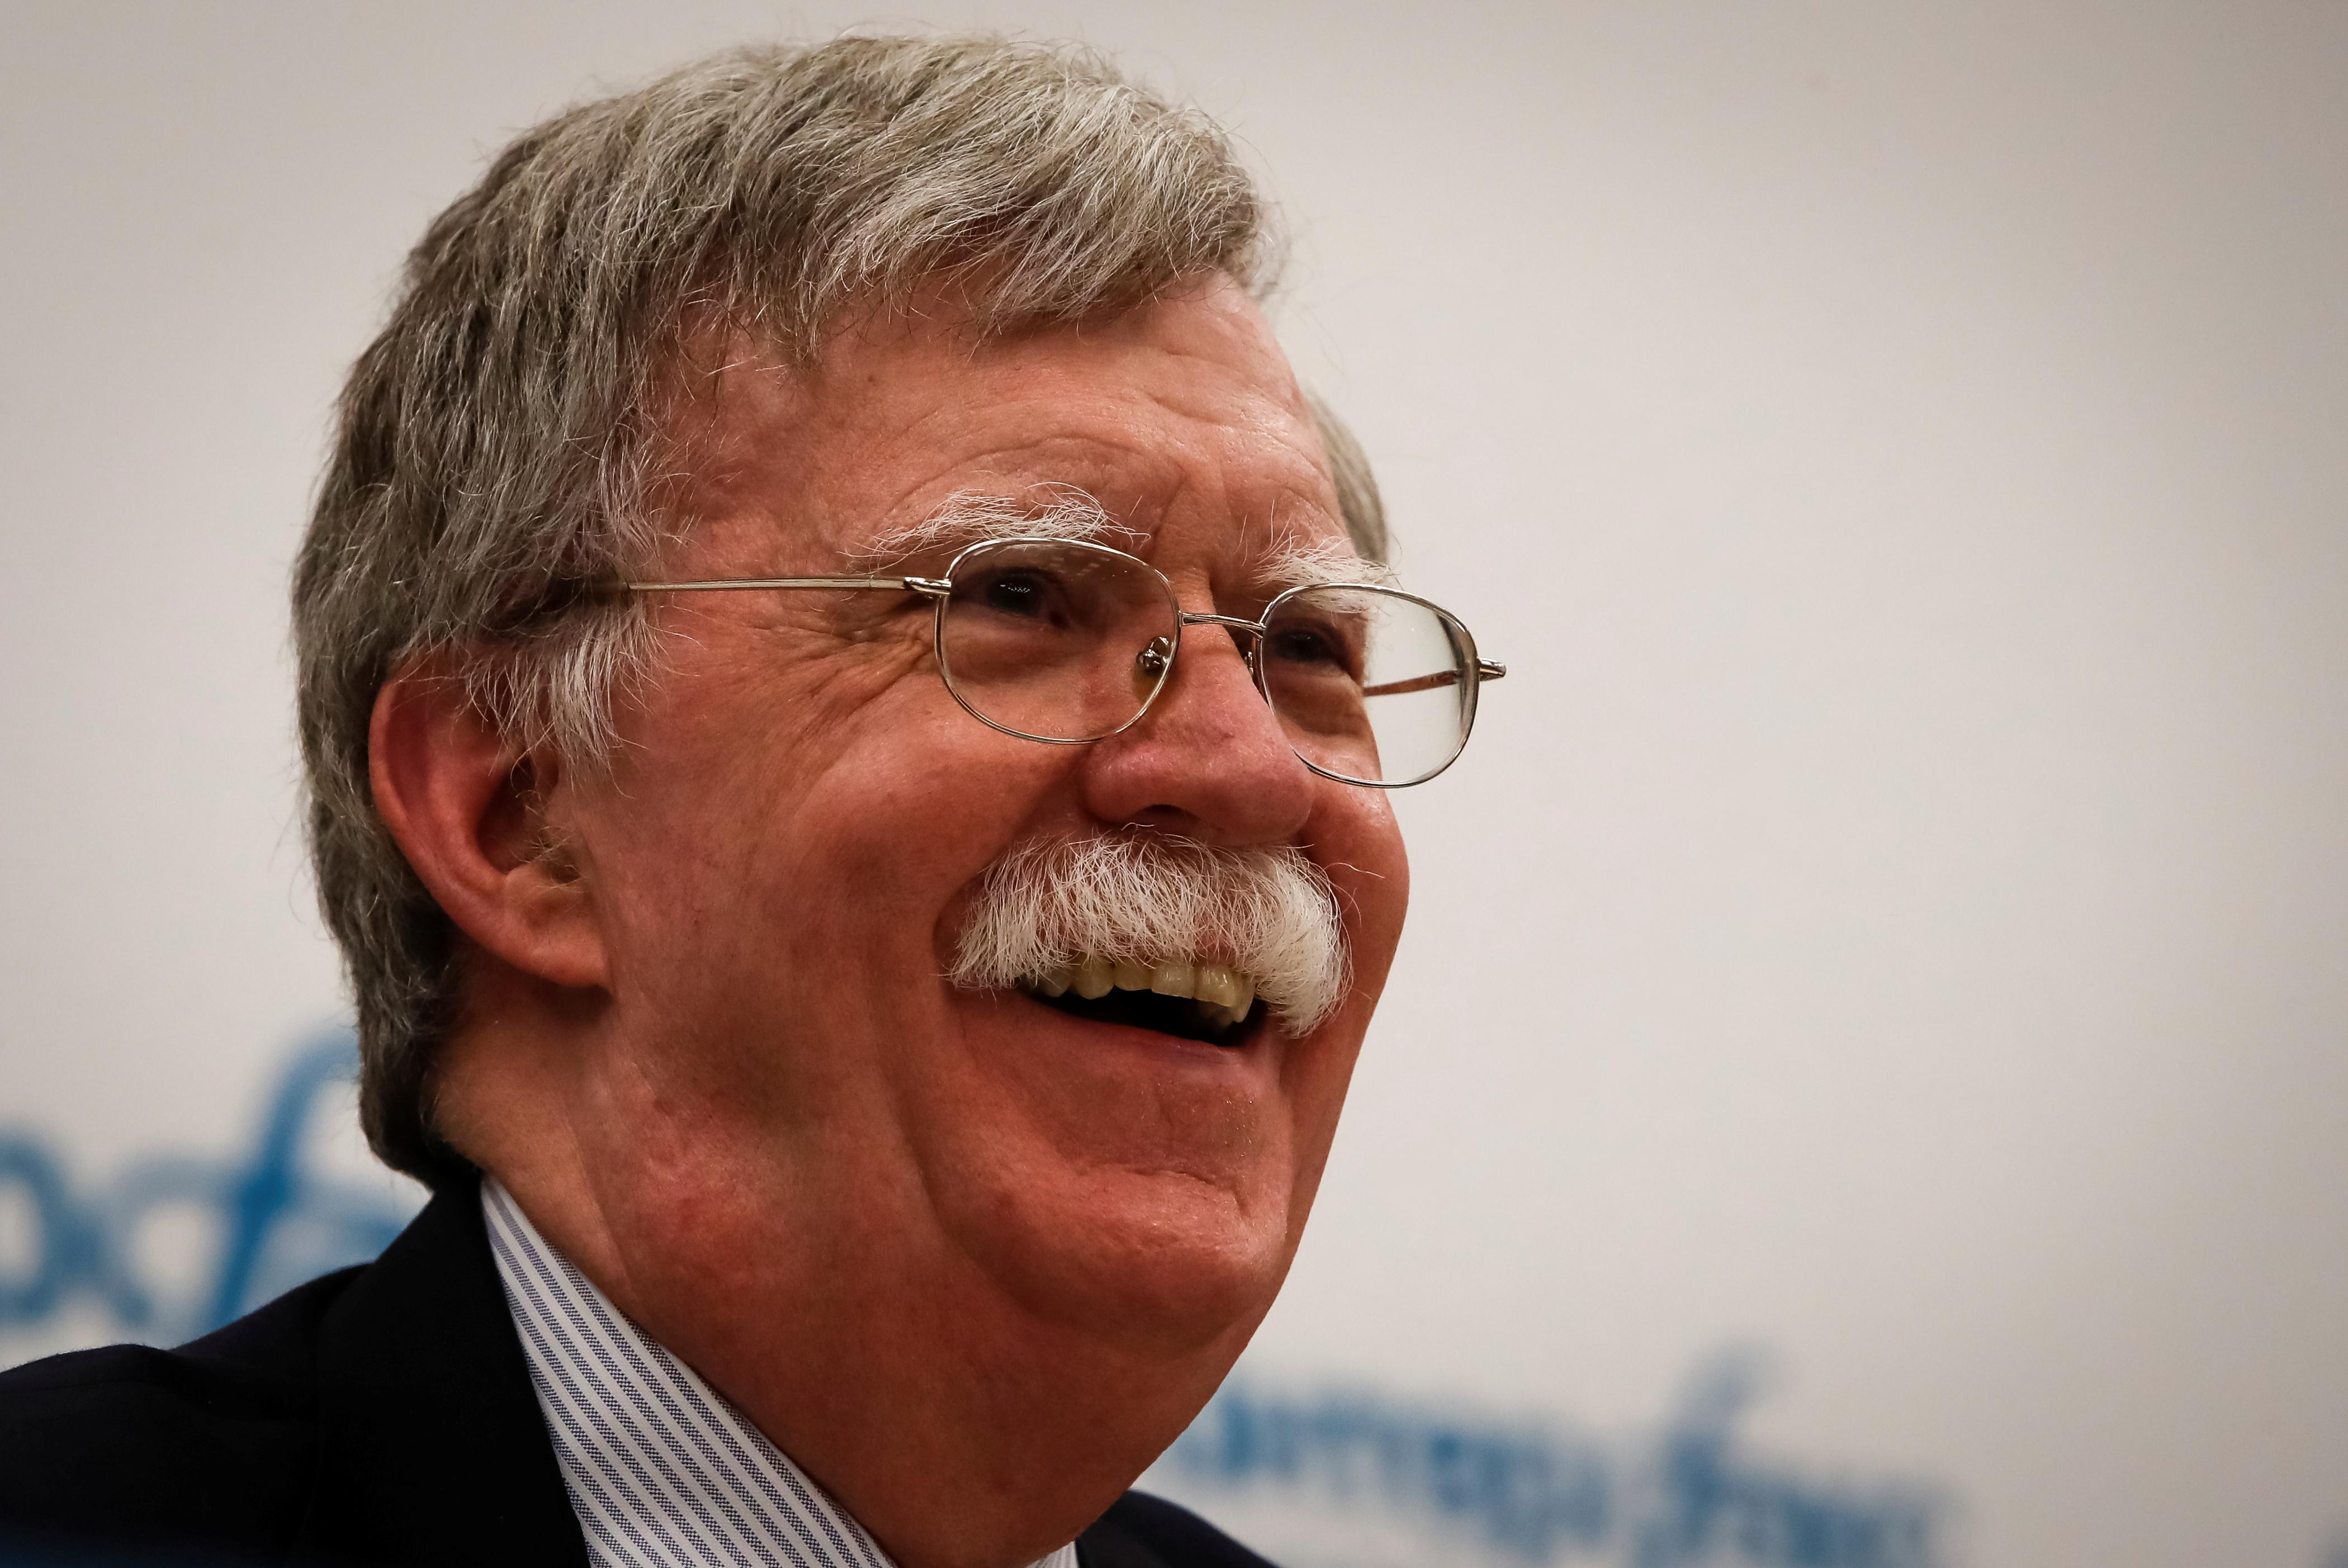 U.S. National Security Adviser John Bolton attends a news conference in Moscow, Russia June 27, 2018.  Sergei Karpukhin